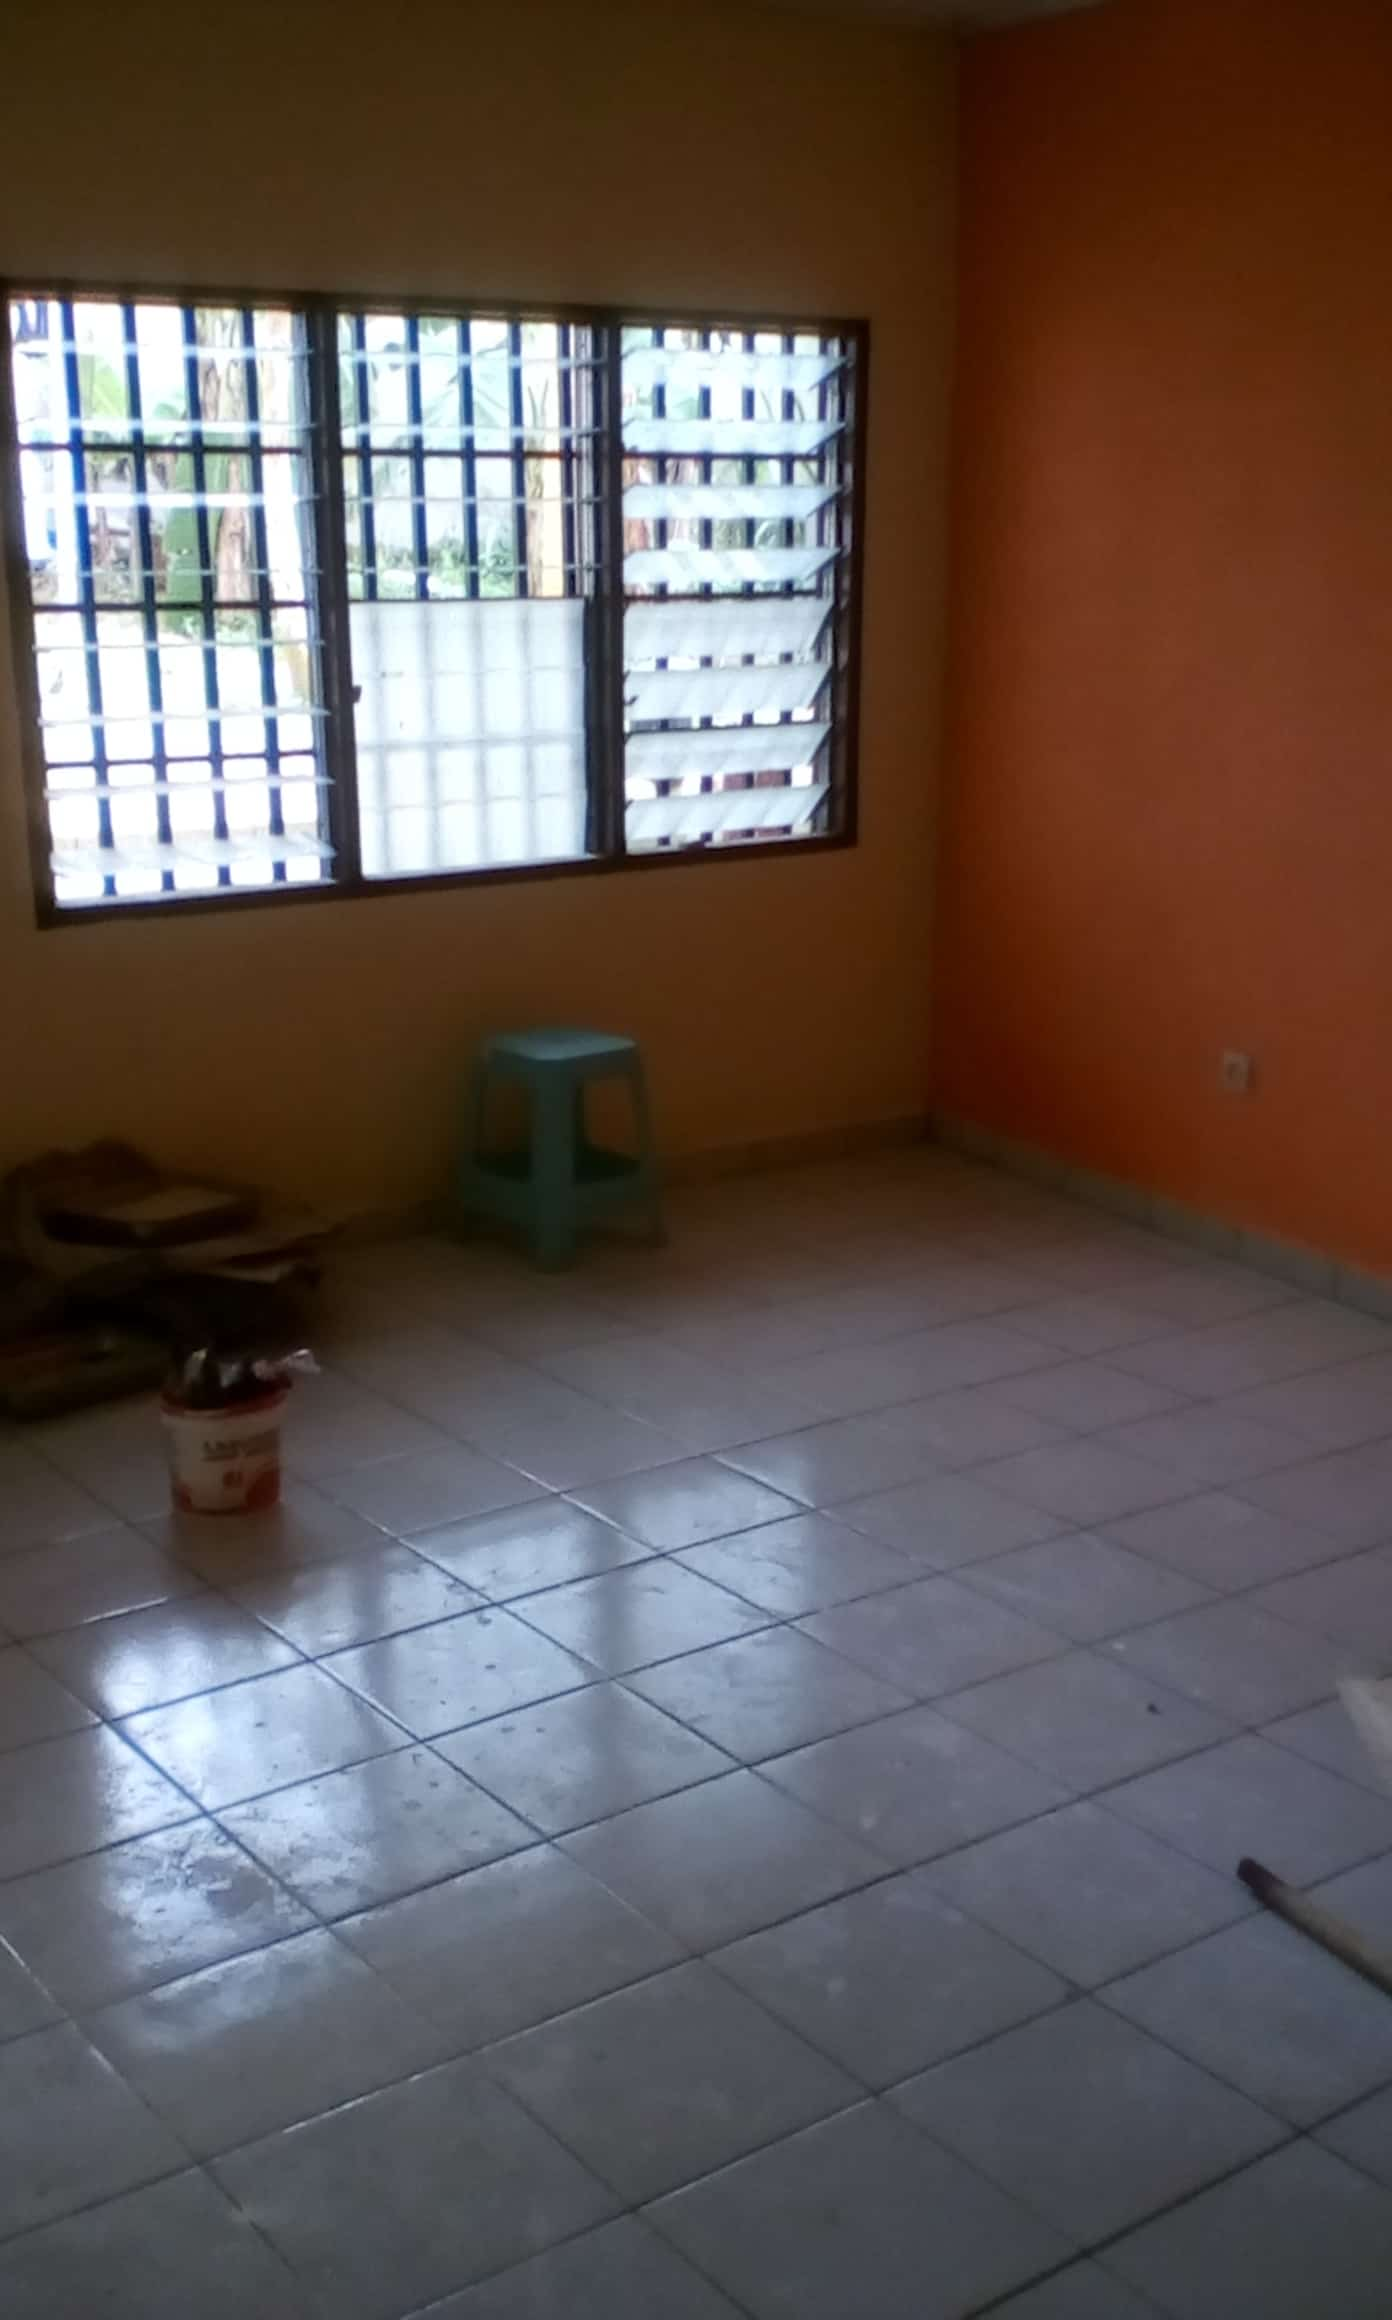 Apartment to rent - Douala, Logbessou I, Antenne - 1 living room(s), 1 bedroom(s), 1 bathroom(s) - 55 000 FCFA / month